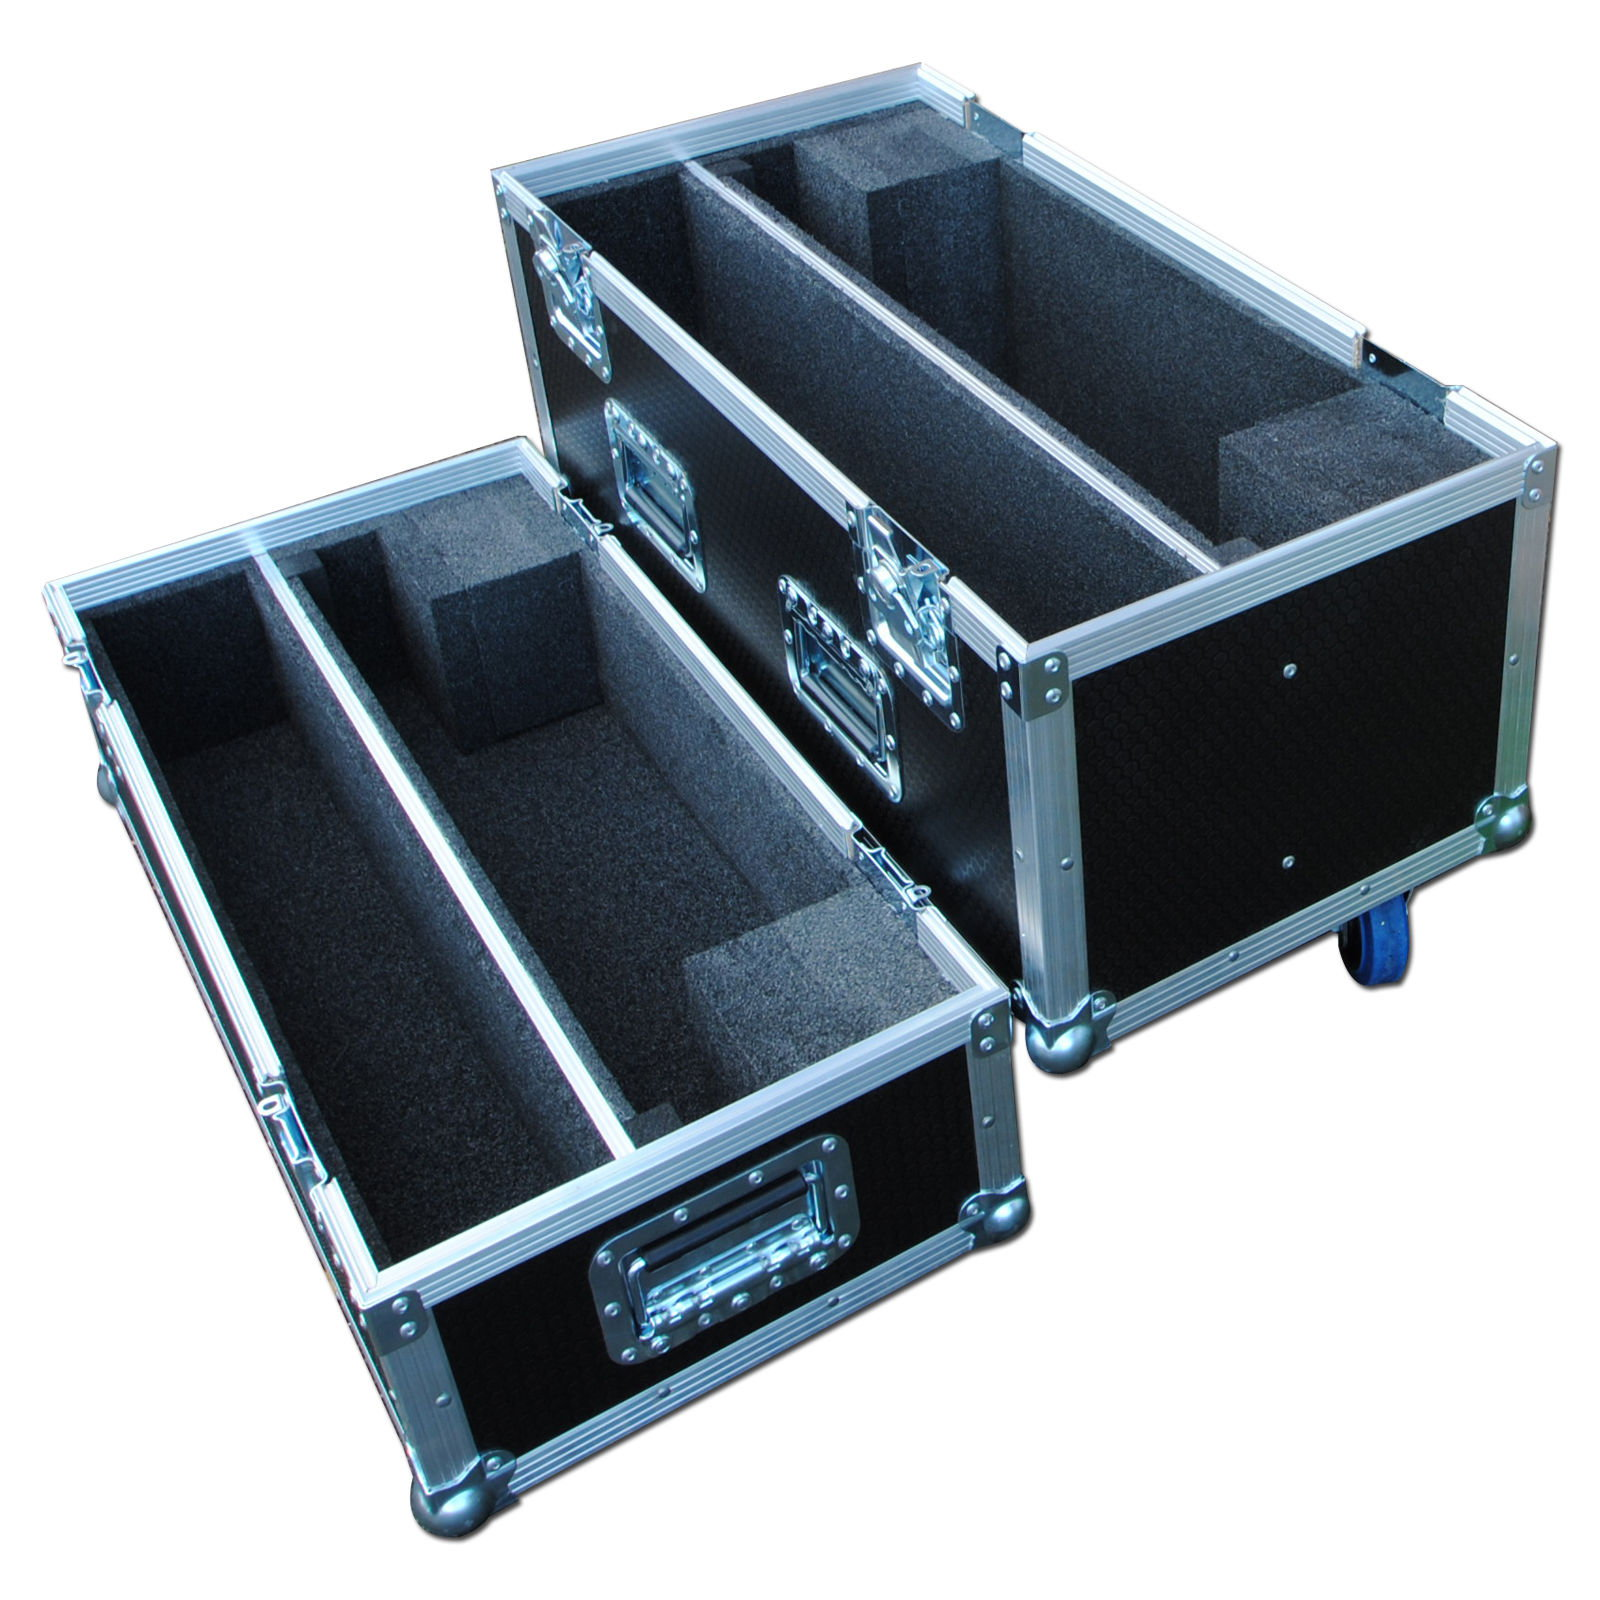 37 Plasma LCD TV Flight Case for LG 37LH4000